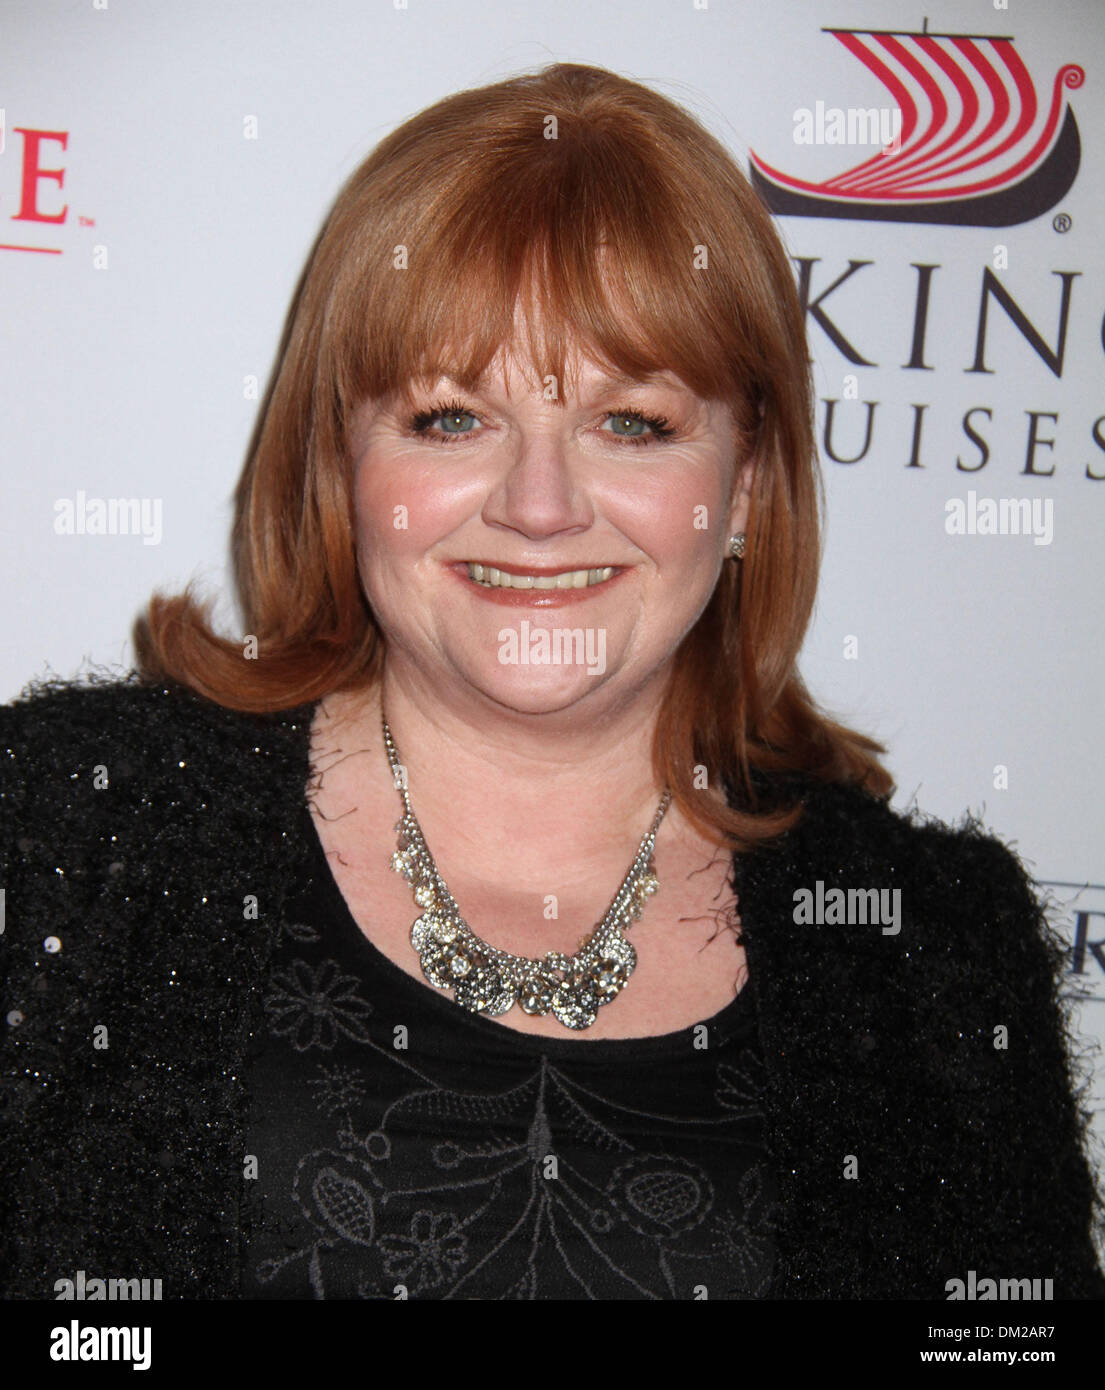 Discussion on this topic: Miyu Uehara (1987?011), lesley-nicol-actress/